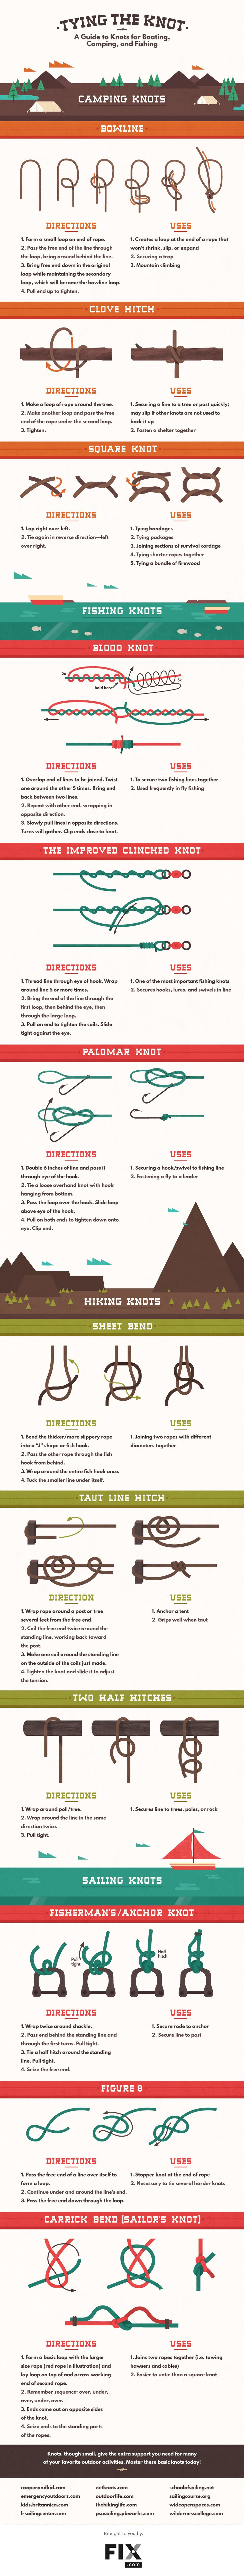 12 Knots Every Outdoorsman Should Know How To Tie Tie Knots Knots Knot Tying Instructions